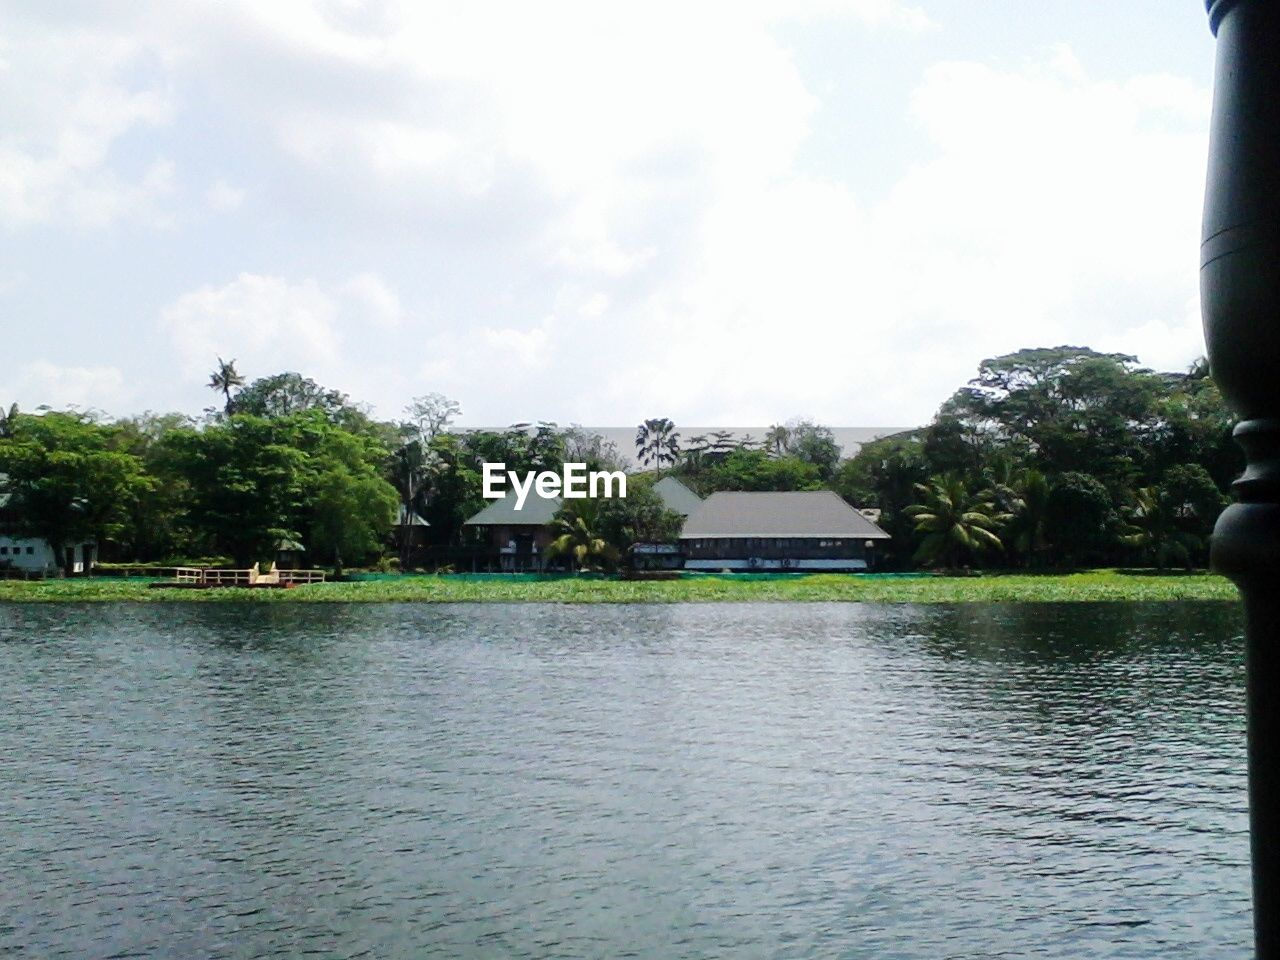 water, tree, sky, nature, day, tranquil scene, outdoors, waterfront, lake, built structure, architecture, no people, growth, scenics, tranquility, beauty in nature, building exterior